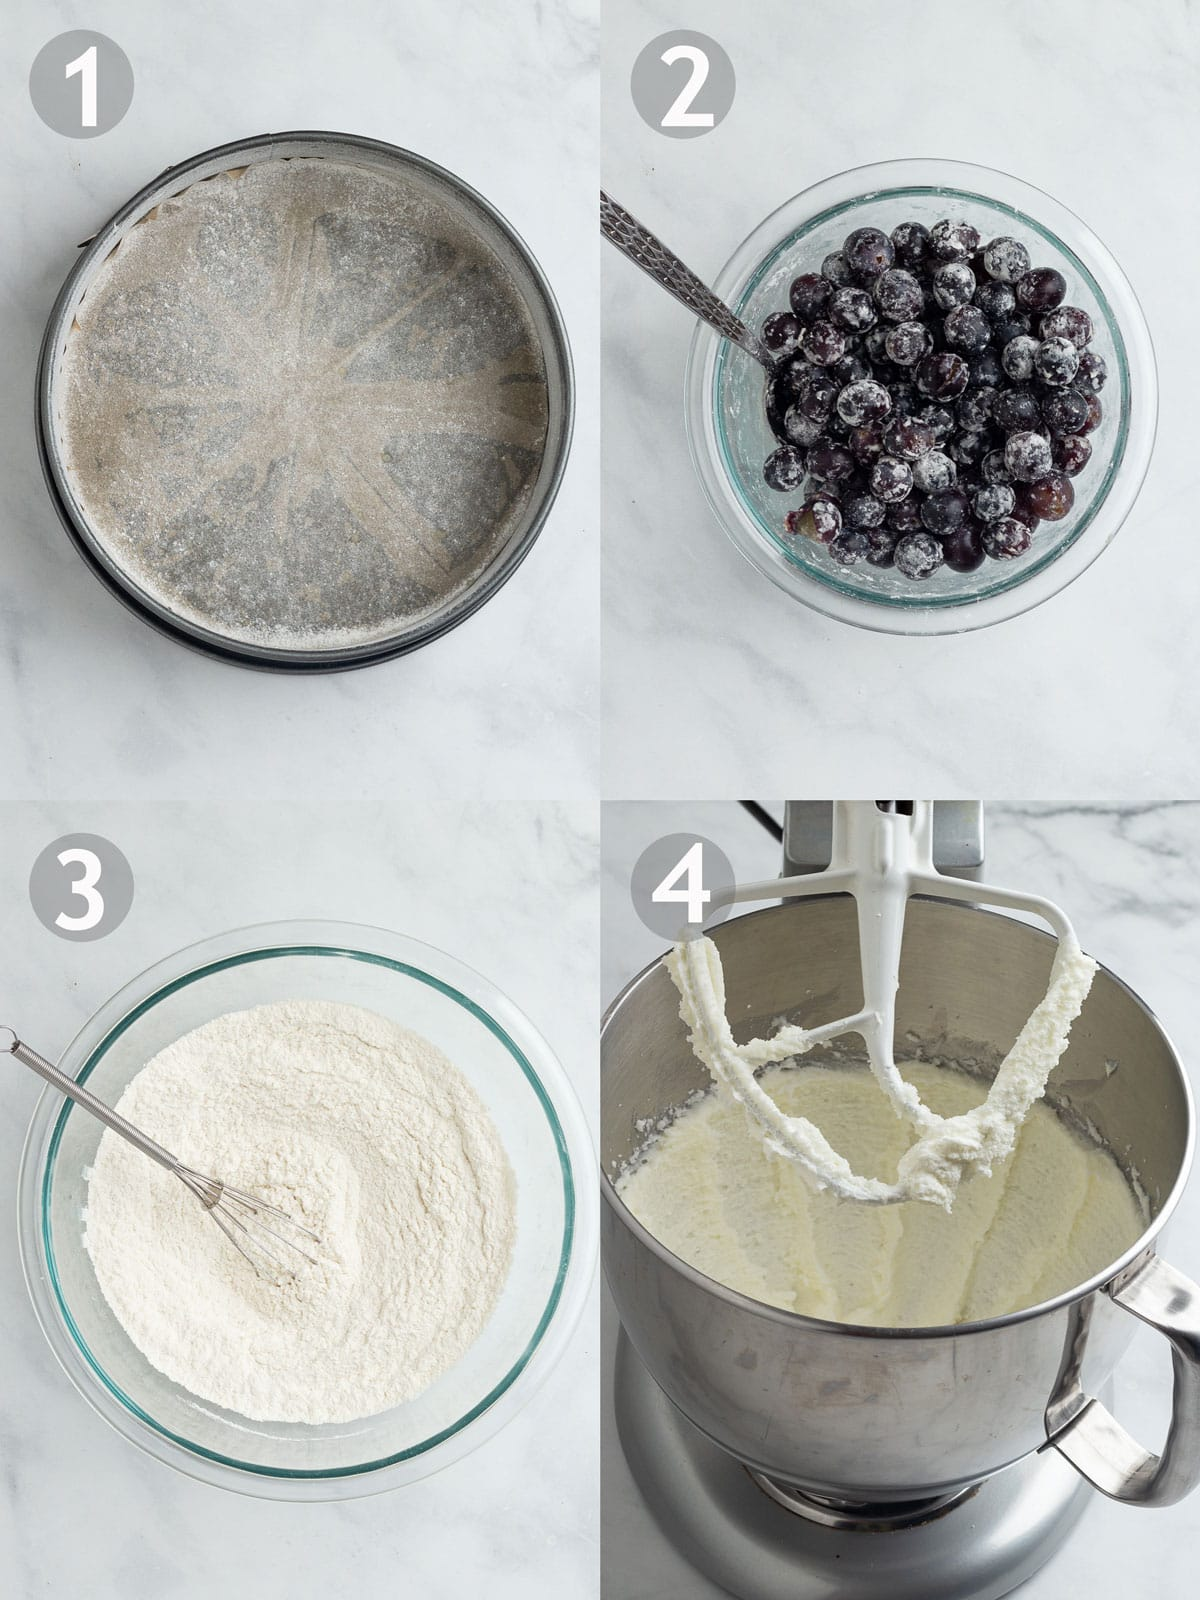 Recipe Steps, 1-4 including lining the pan, mixing the dry ingredients and creaming the butter and sugar together.